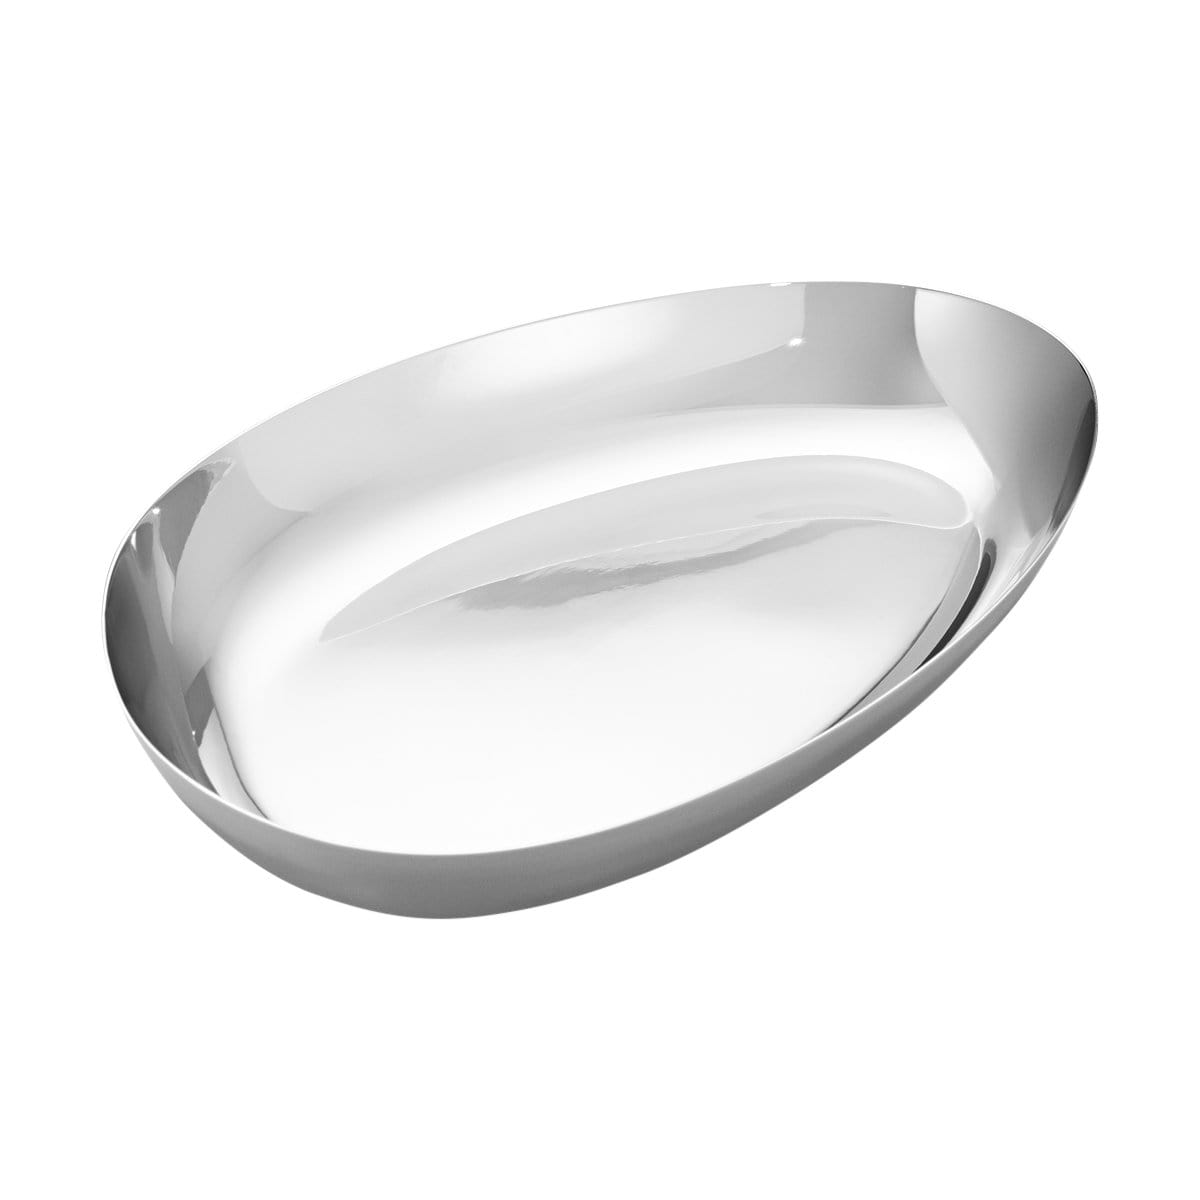 Georg Jensen Servewear Sky Small Stainless Steel Bowl